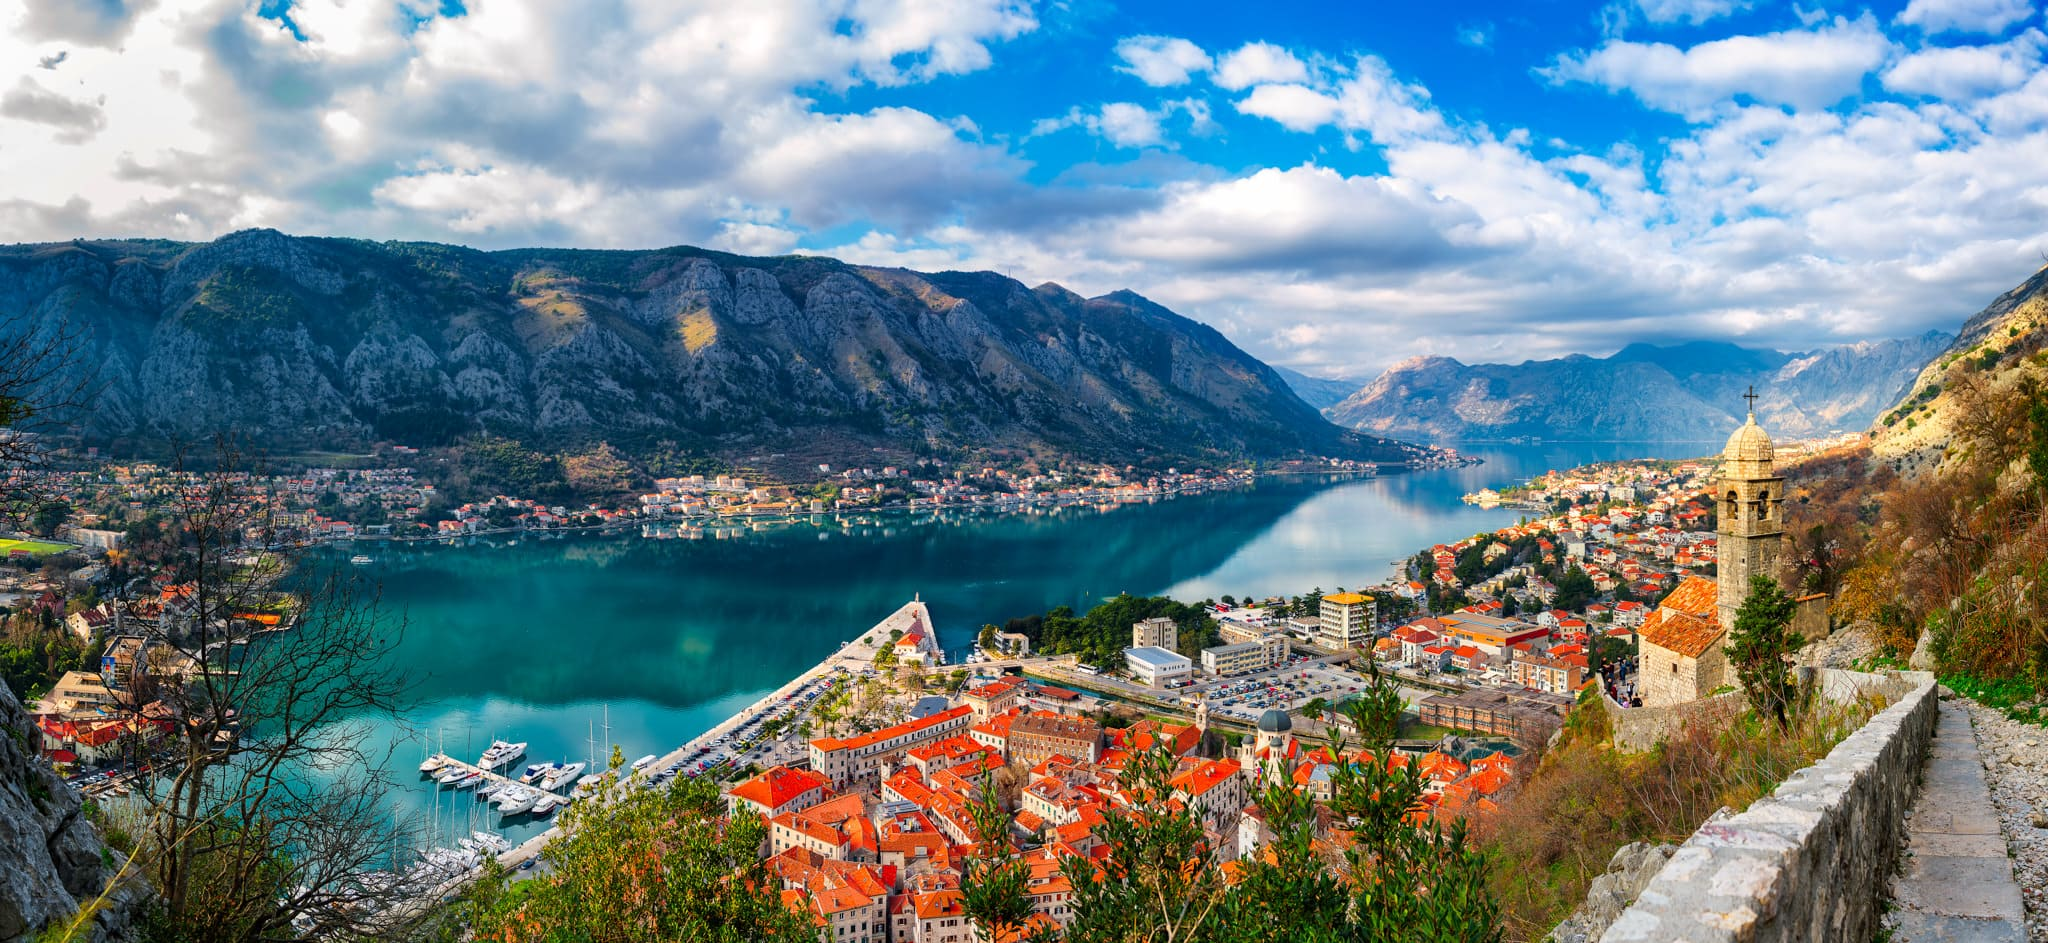 Sunny day in Montenegro in Kotor - Kotor old town and bay seen from Venetian Fortress ruins